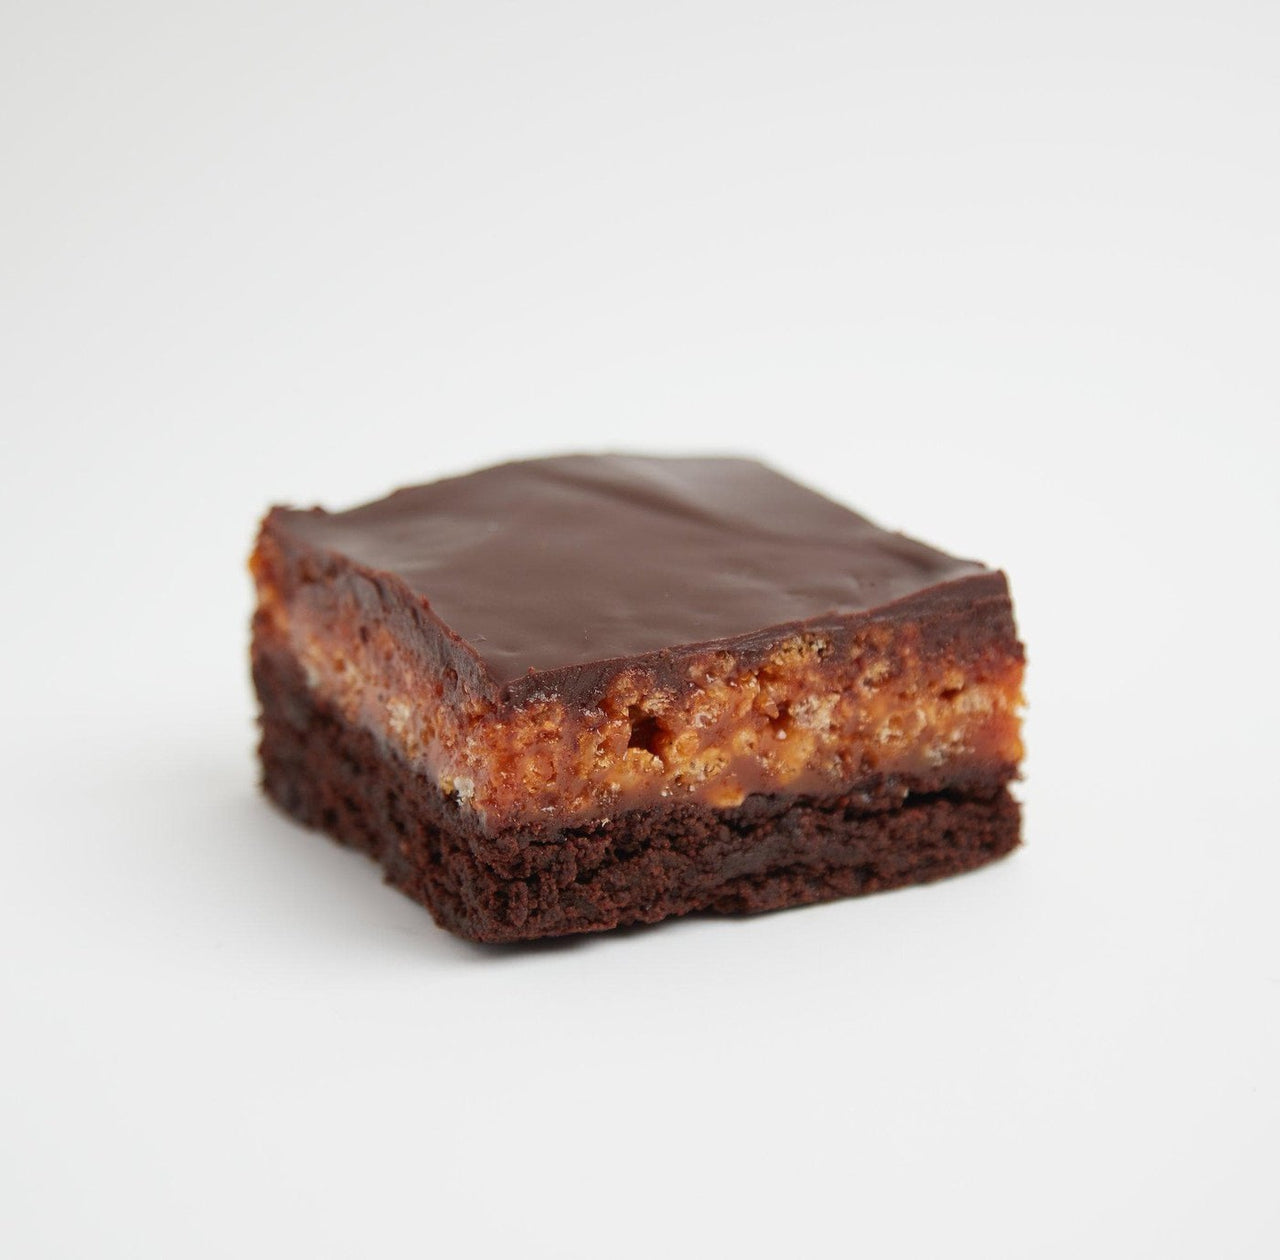 Caramel Crunch Bar by Crumbs & Doilies